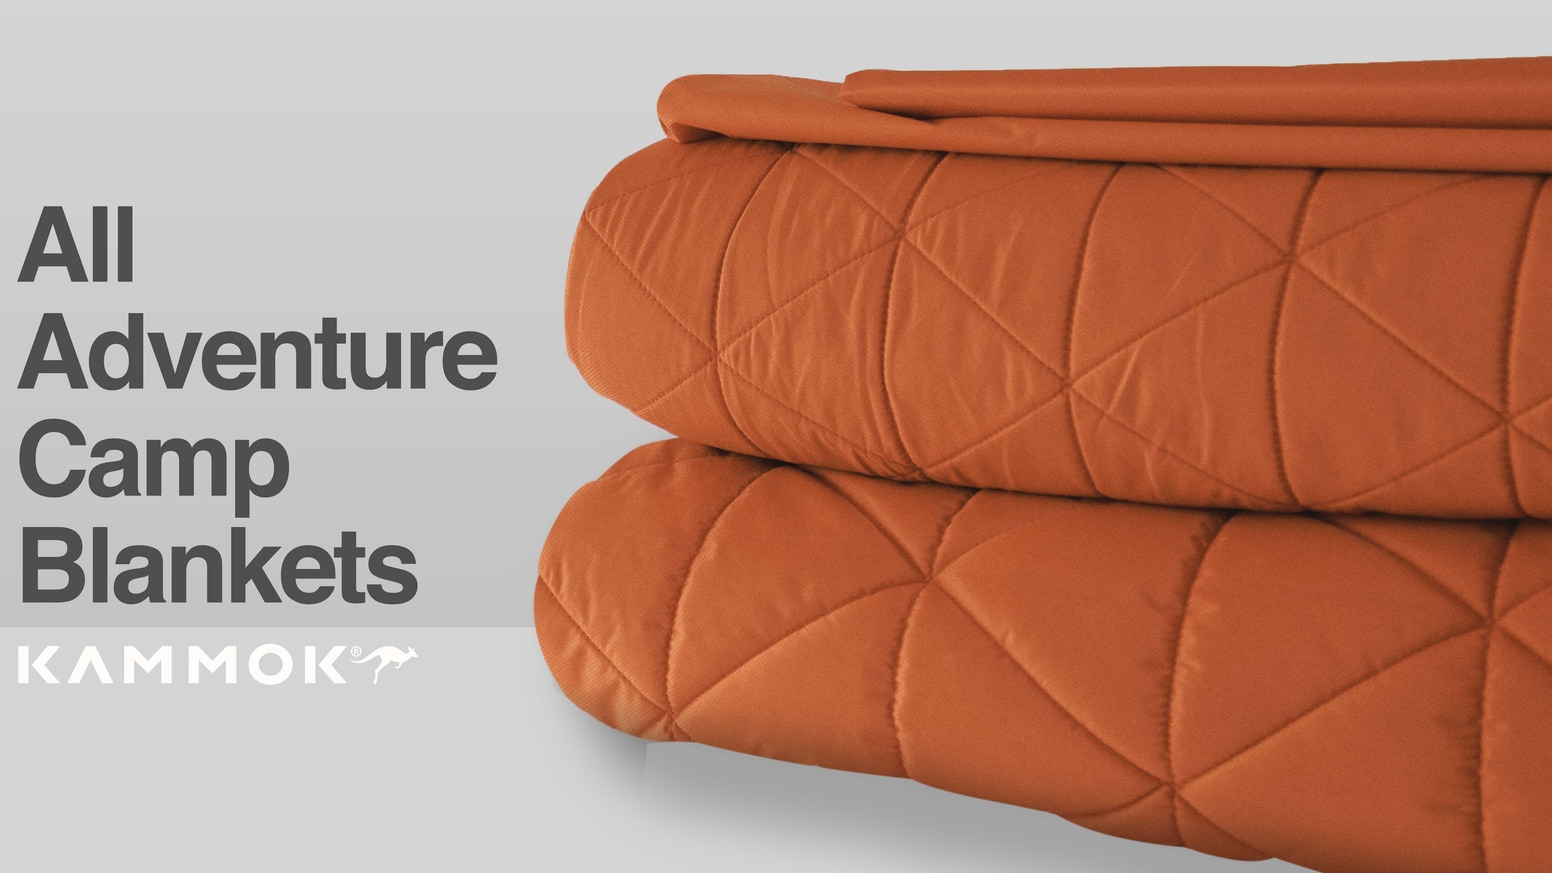 Our greatest adventures are unpredictable. Be ready for anything with Kammok's 3 part blanket system.